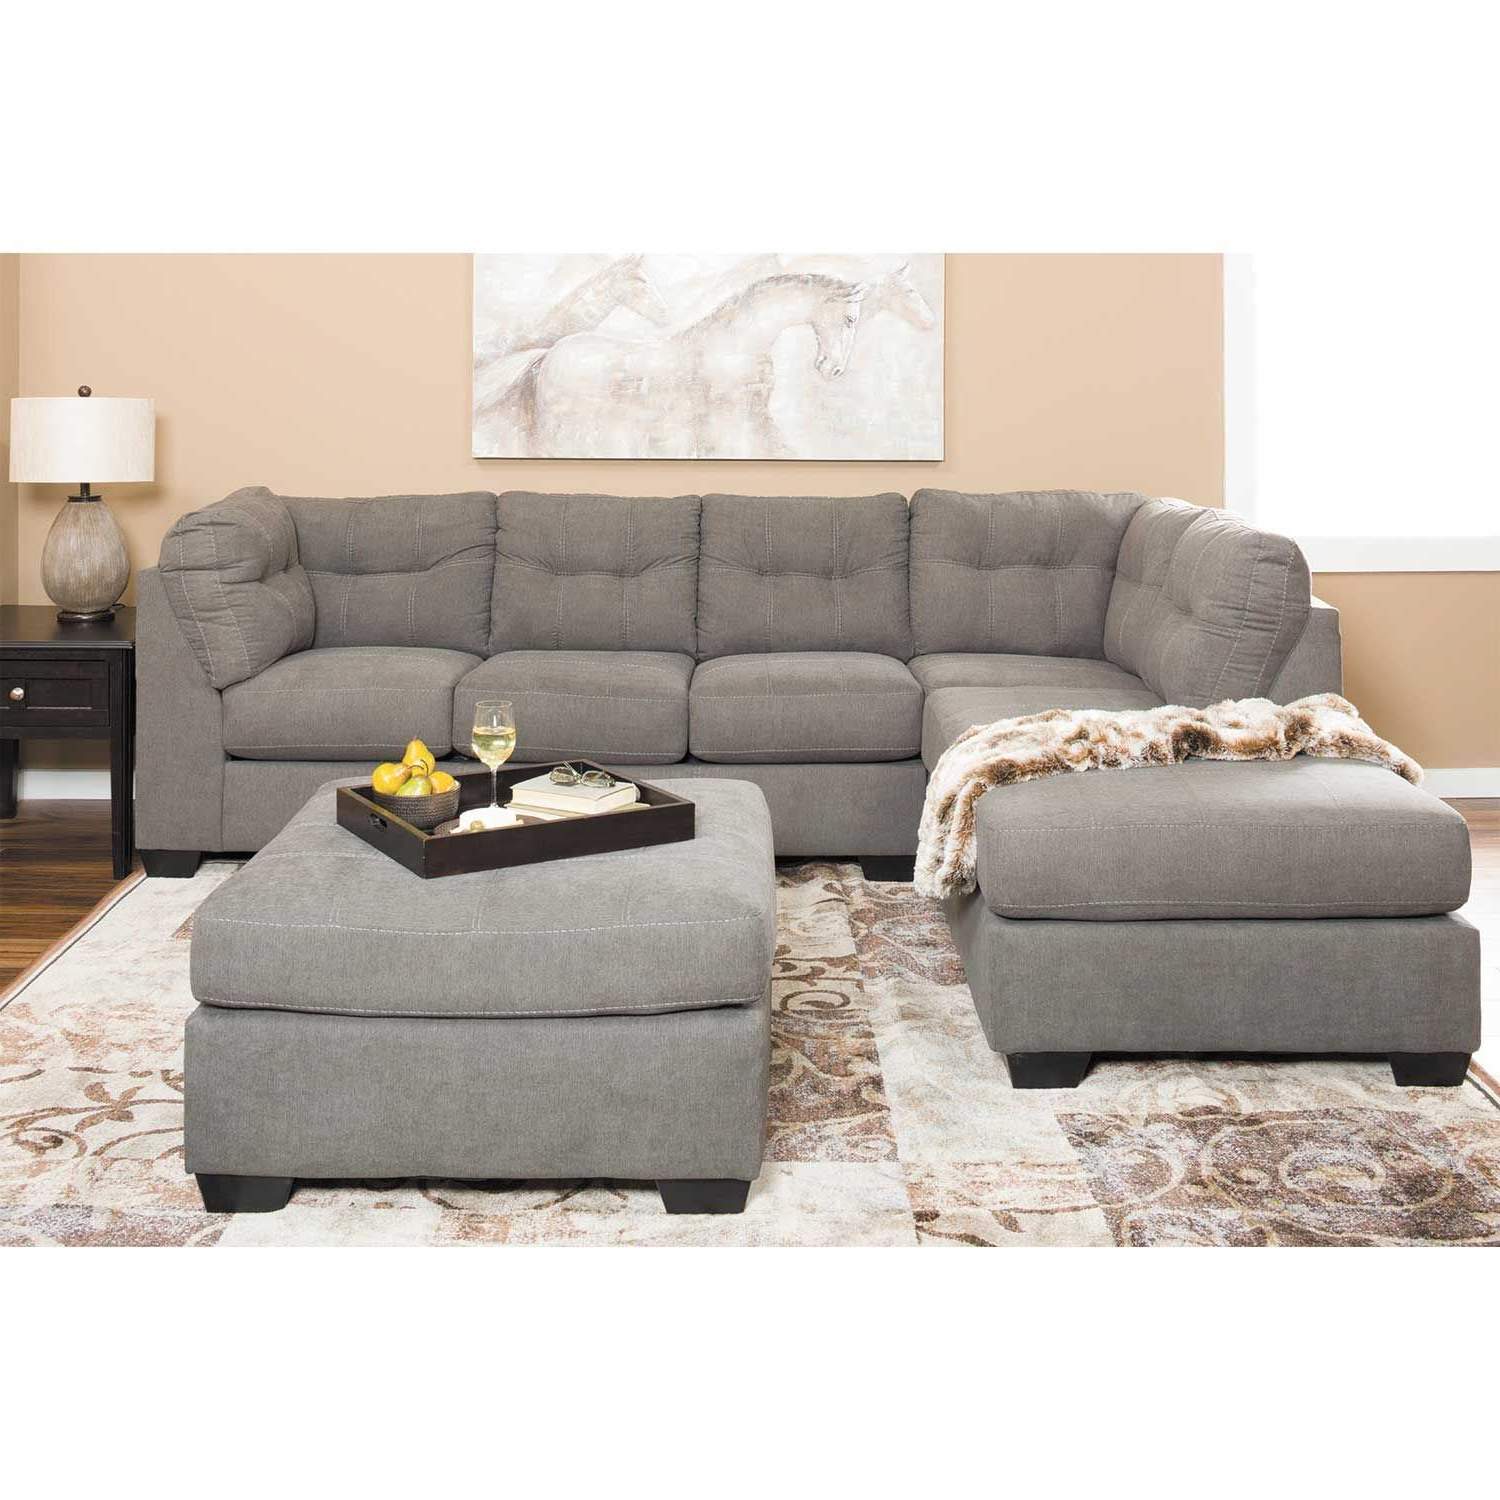 Maier Charcoal 2 Piece Sectional With Laf Chaise (View 14 of 20)